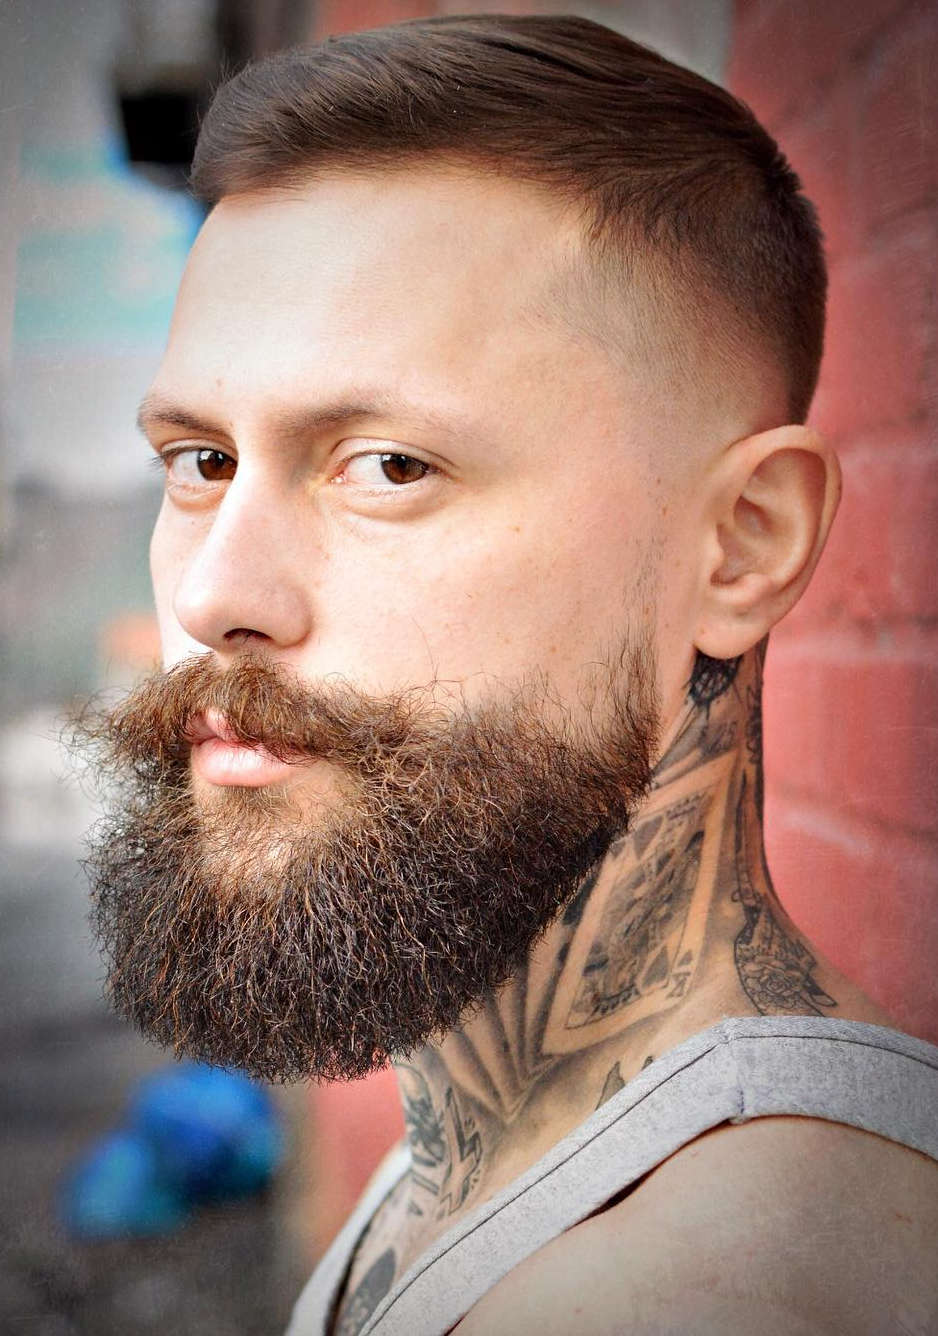 hairstyles for men with beards – blackfishbry